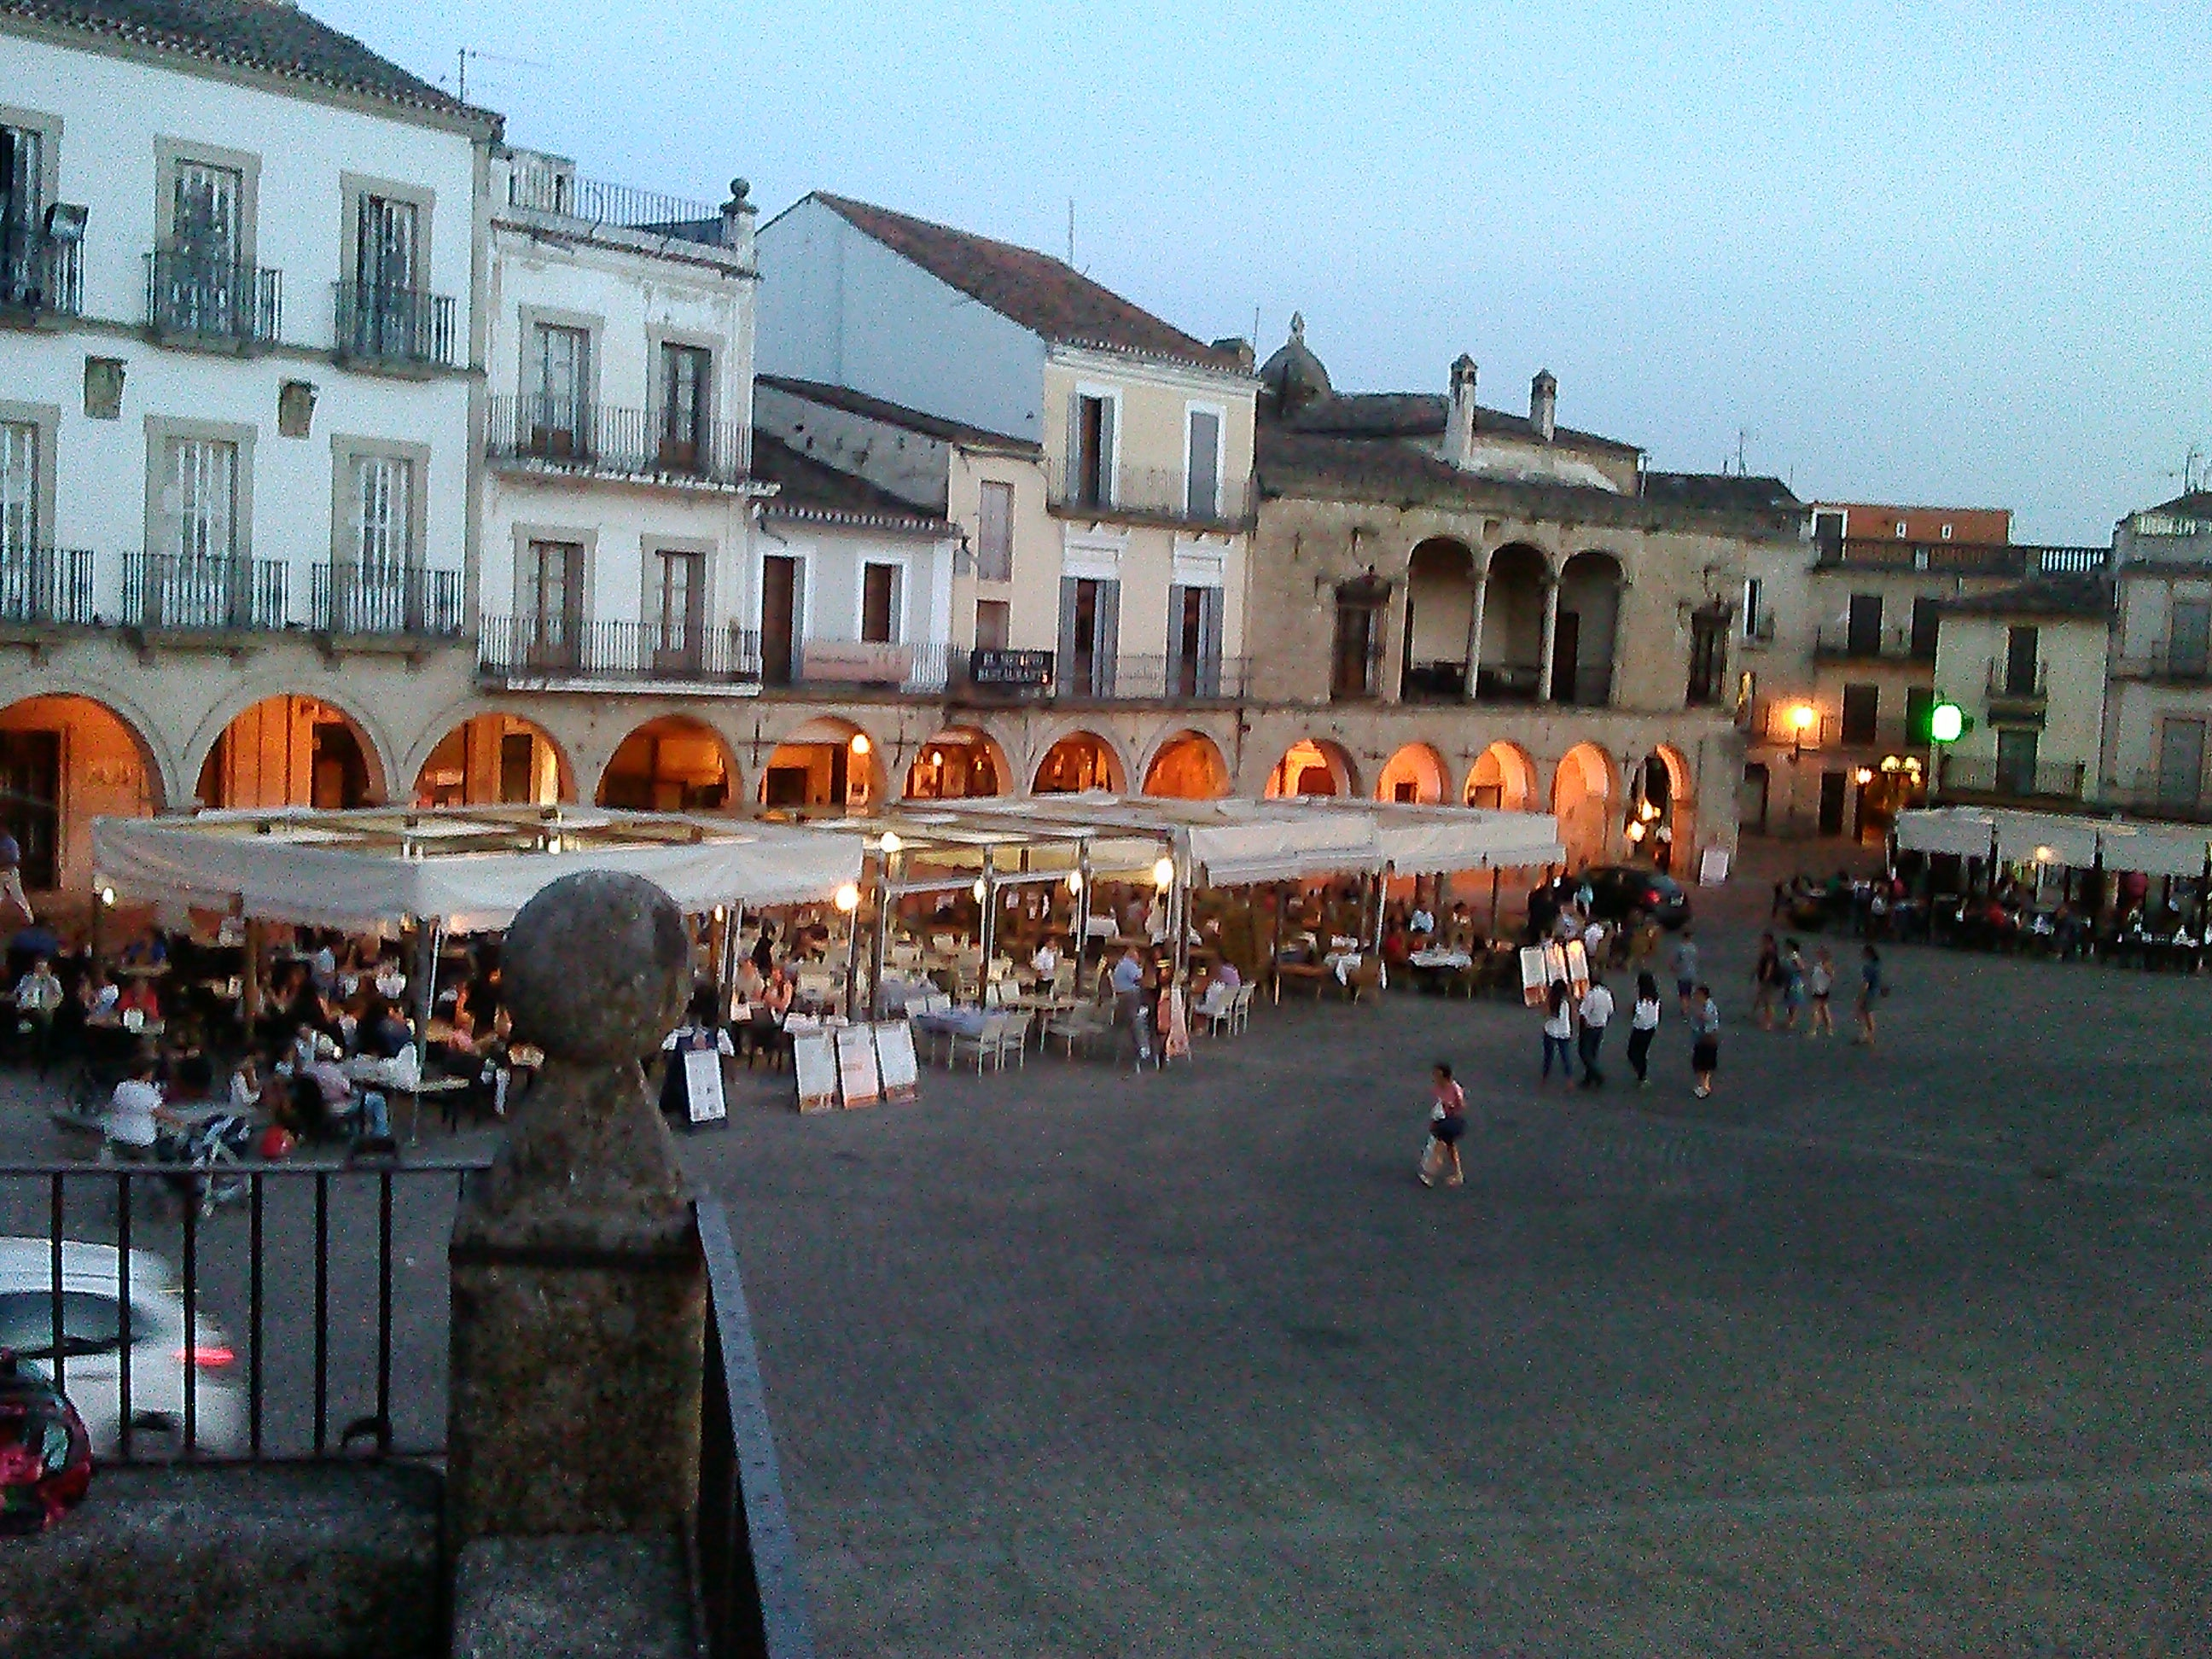 Ciudad en Plaza Mayor de Trujillo